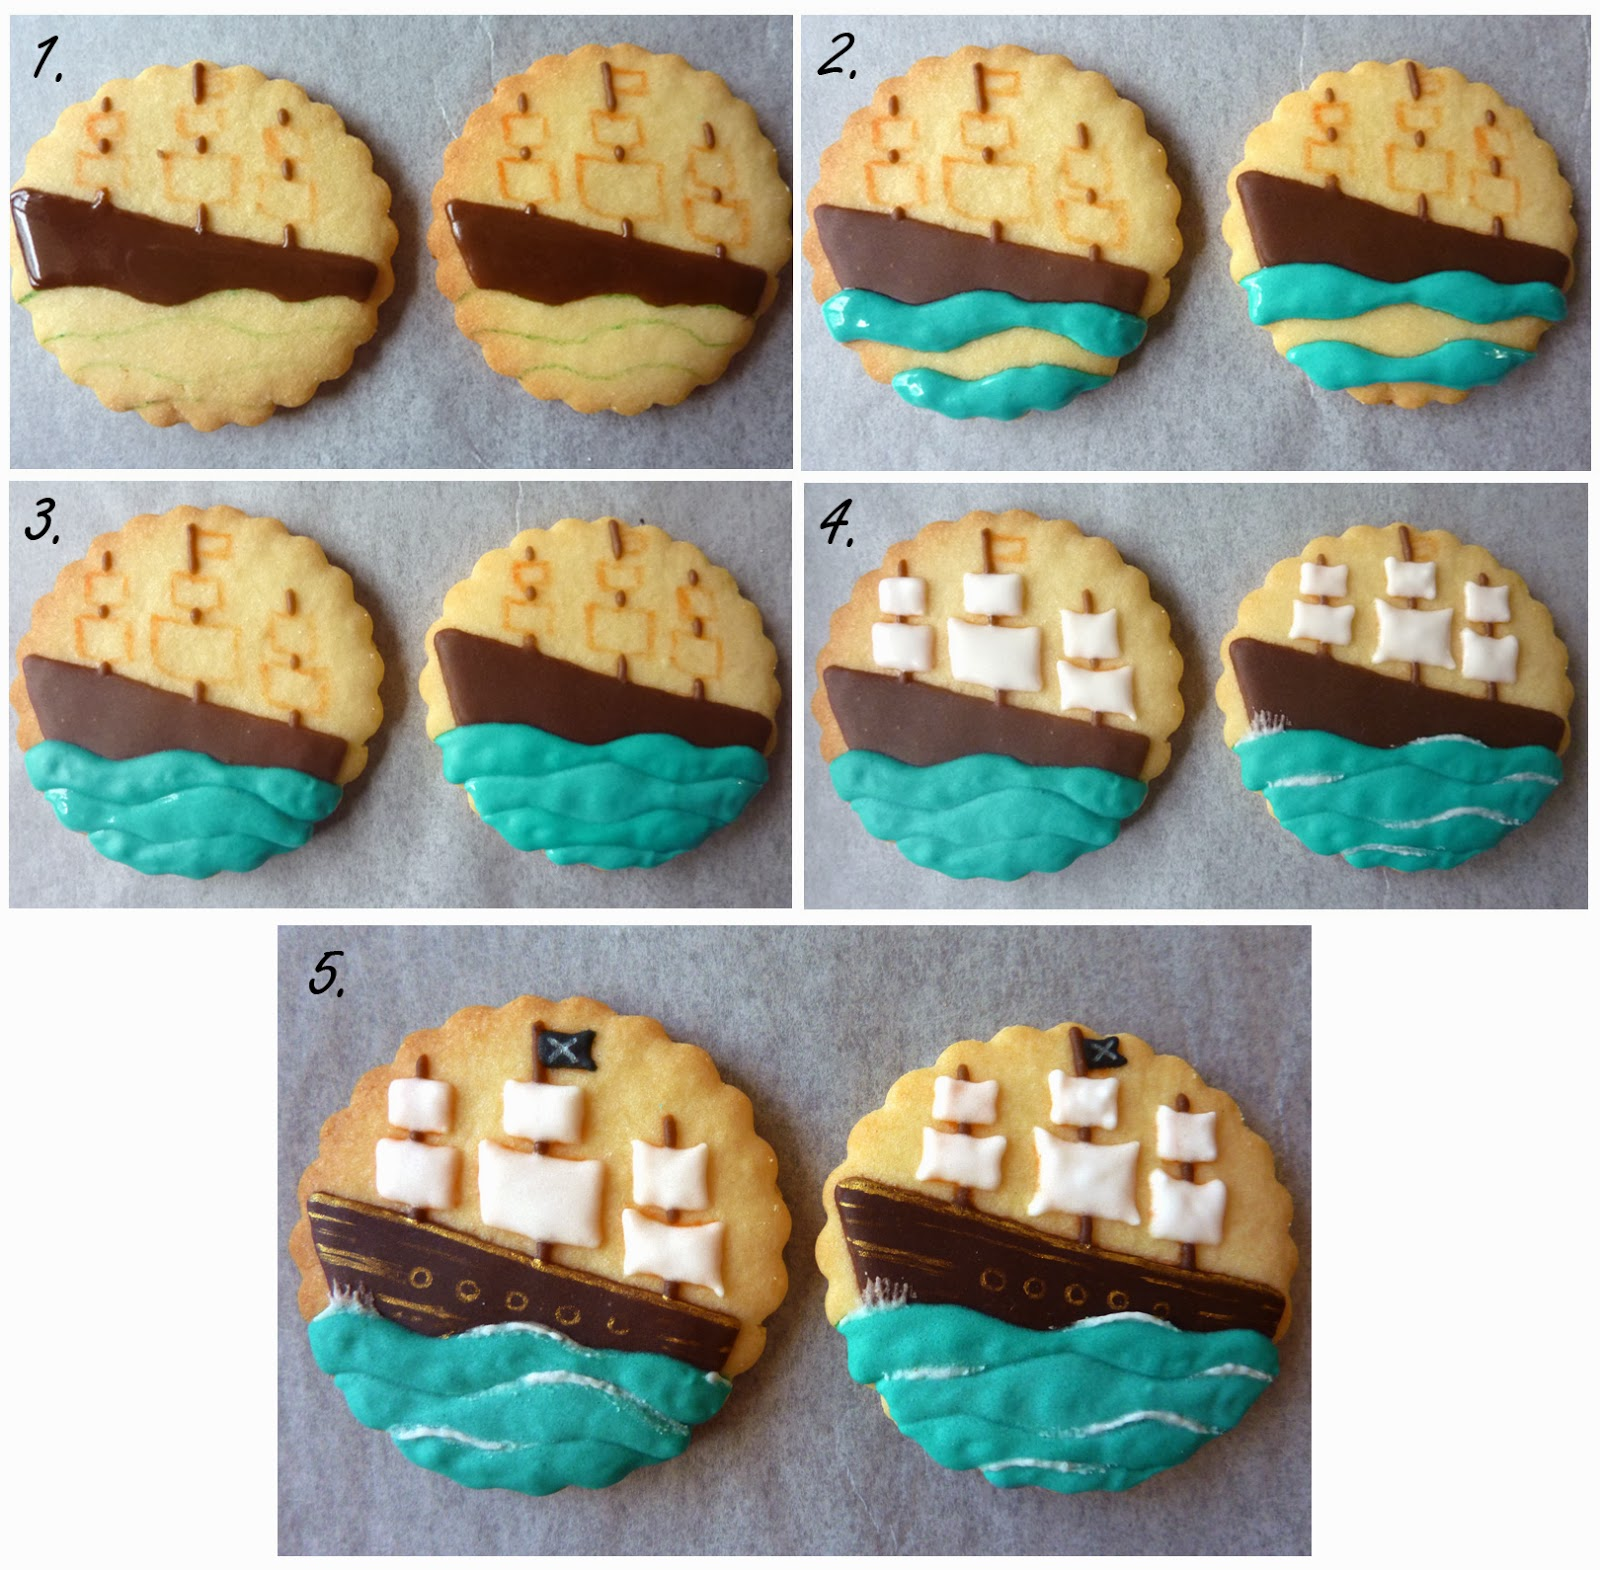 Pirate Ship Cookie Tutorial